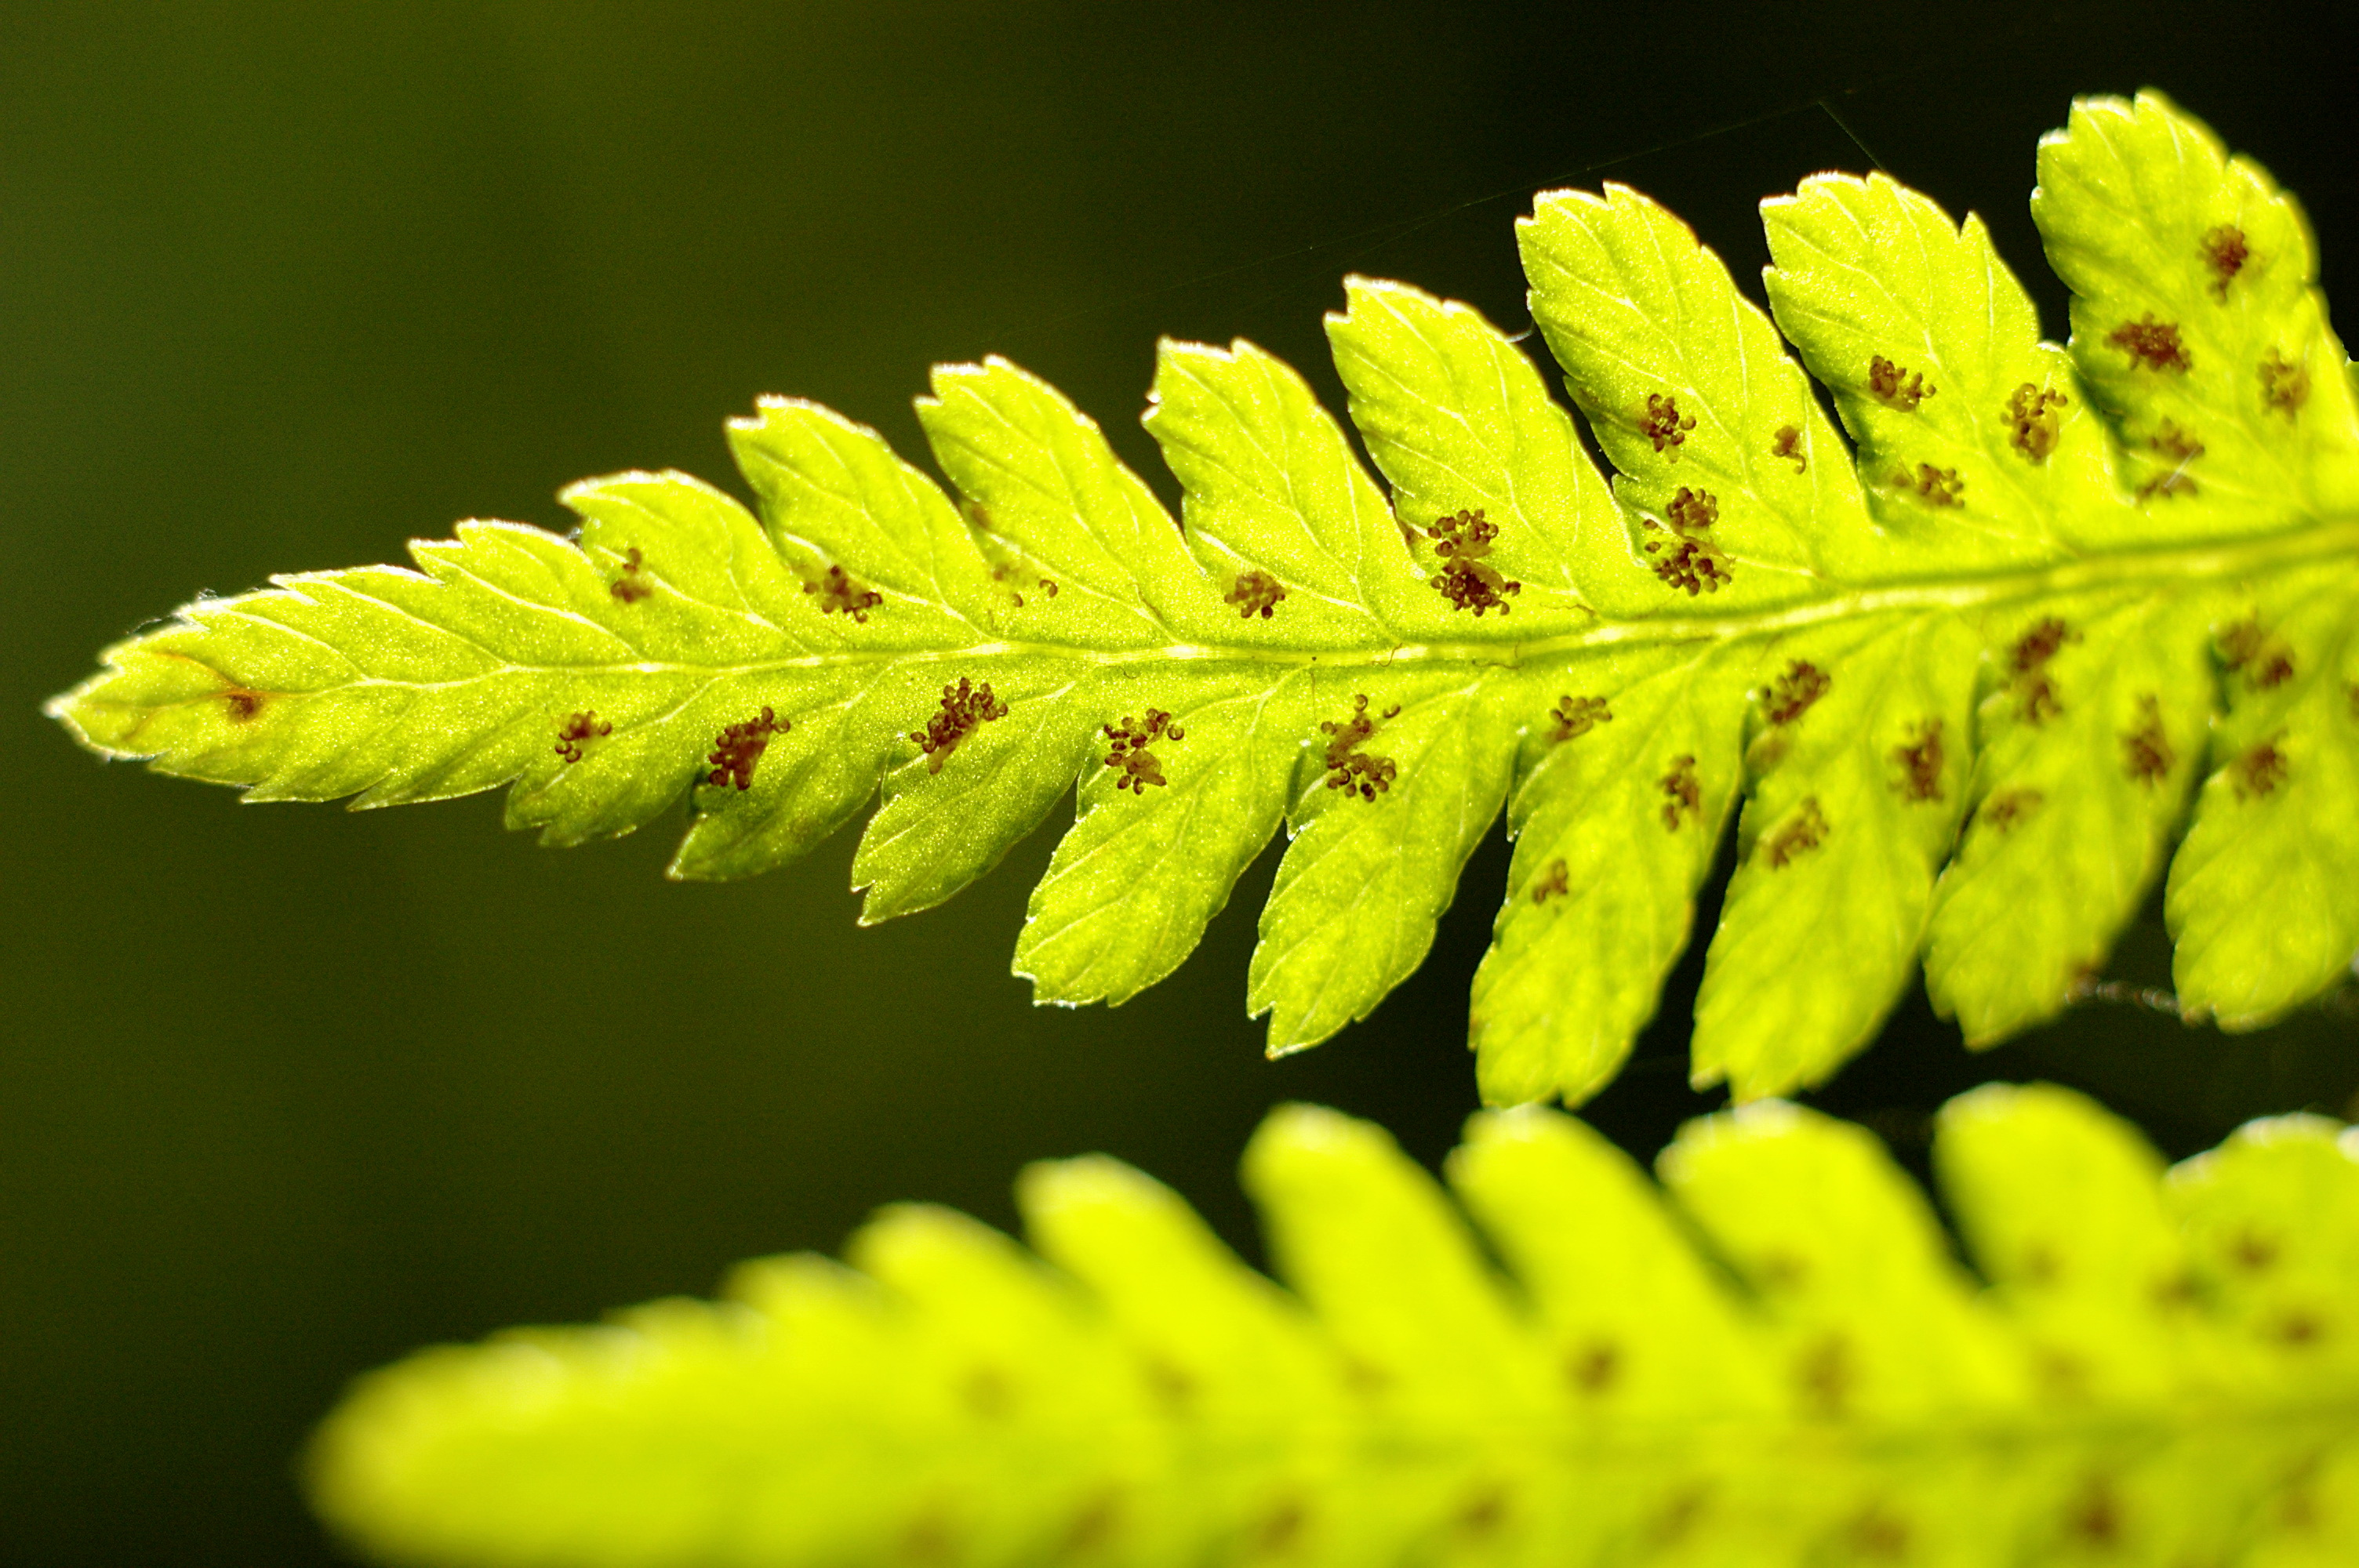 Earth - Fern  Wallpaper